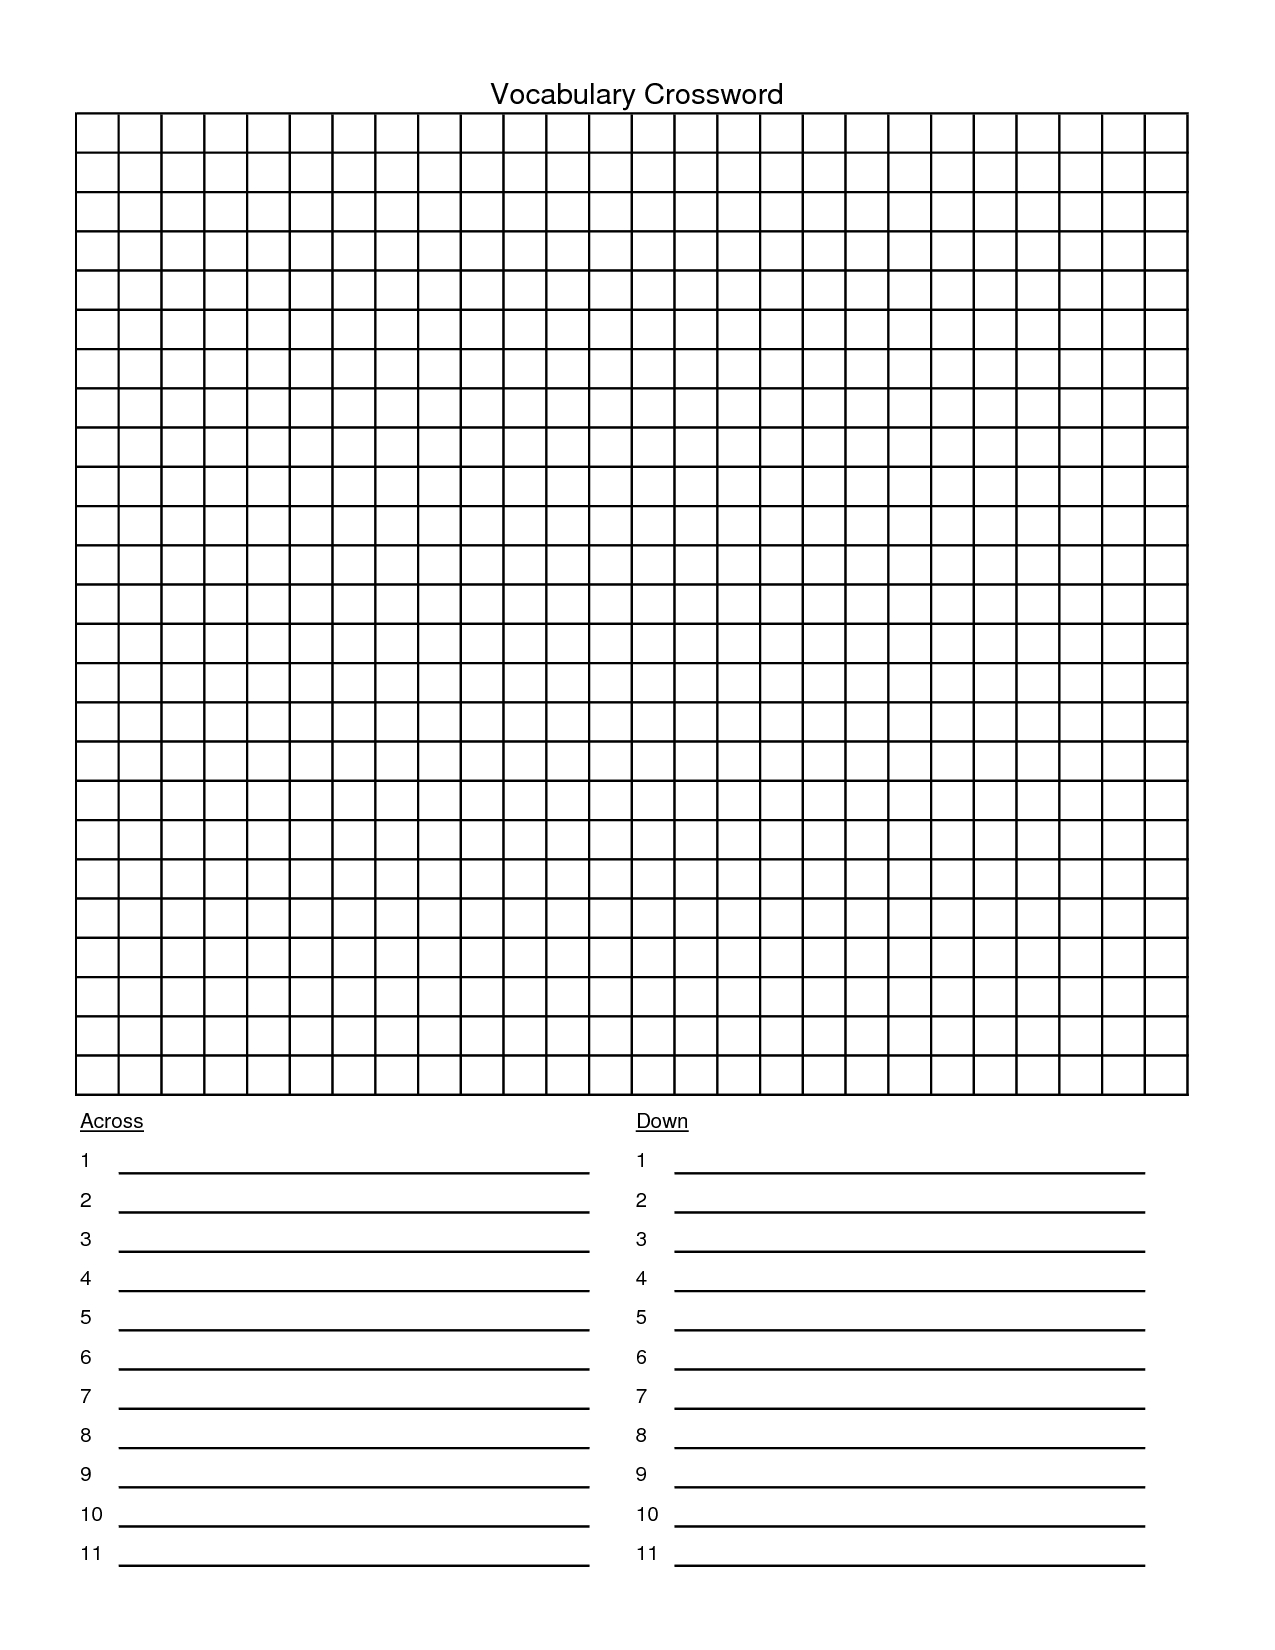 Template For Crossword Puzzle. Crossword Template Daily Dose Of - Blank Crossword Puzzle Grids Printable